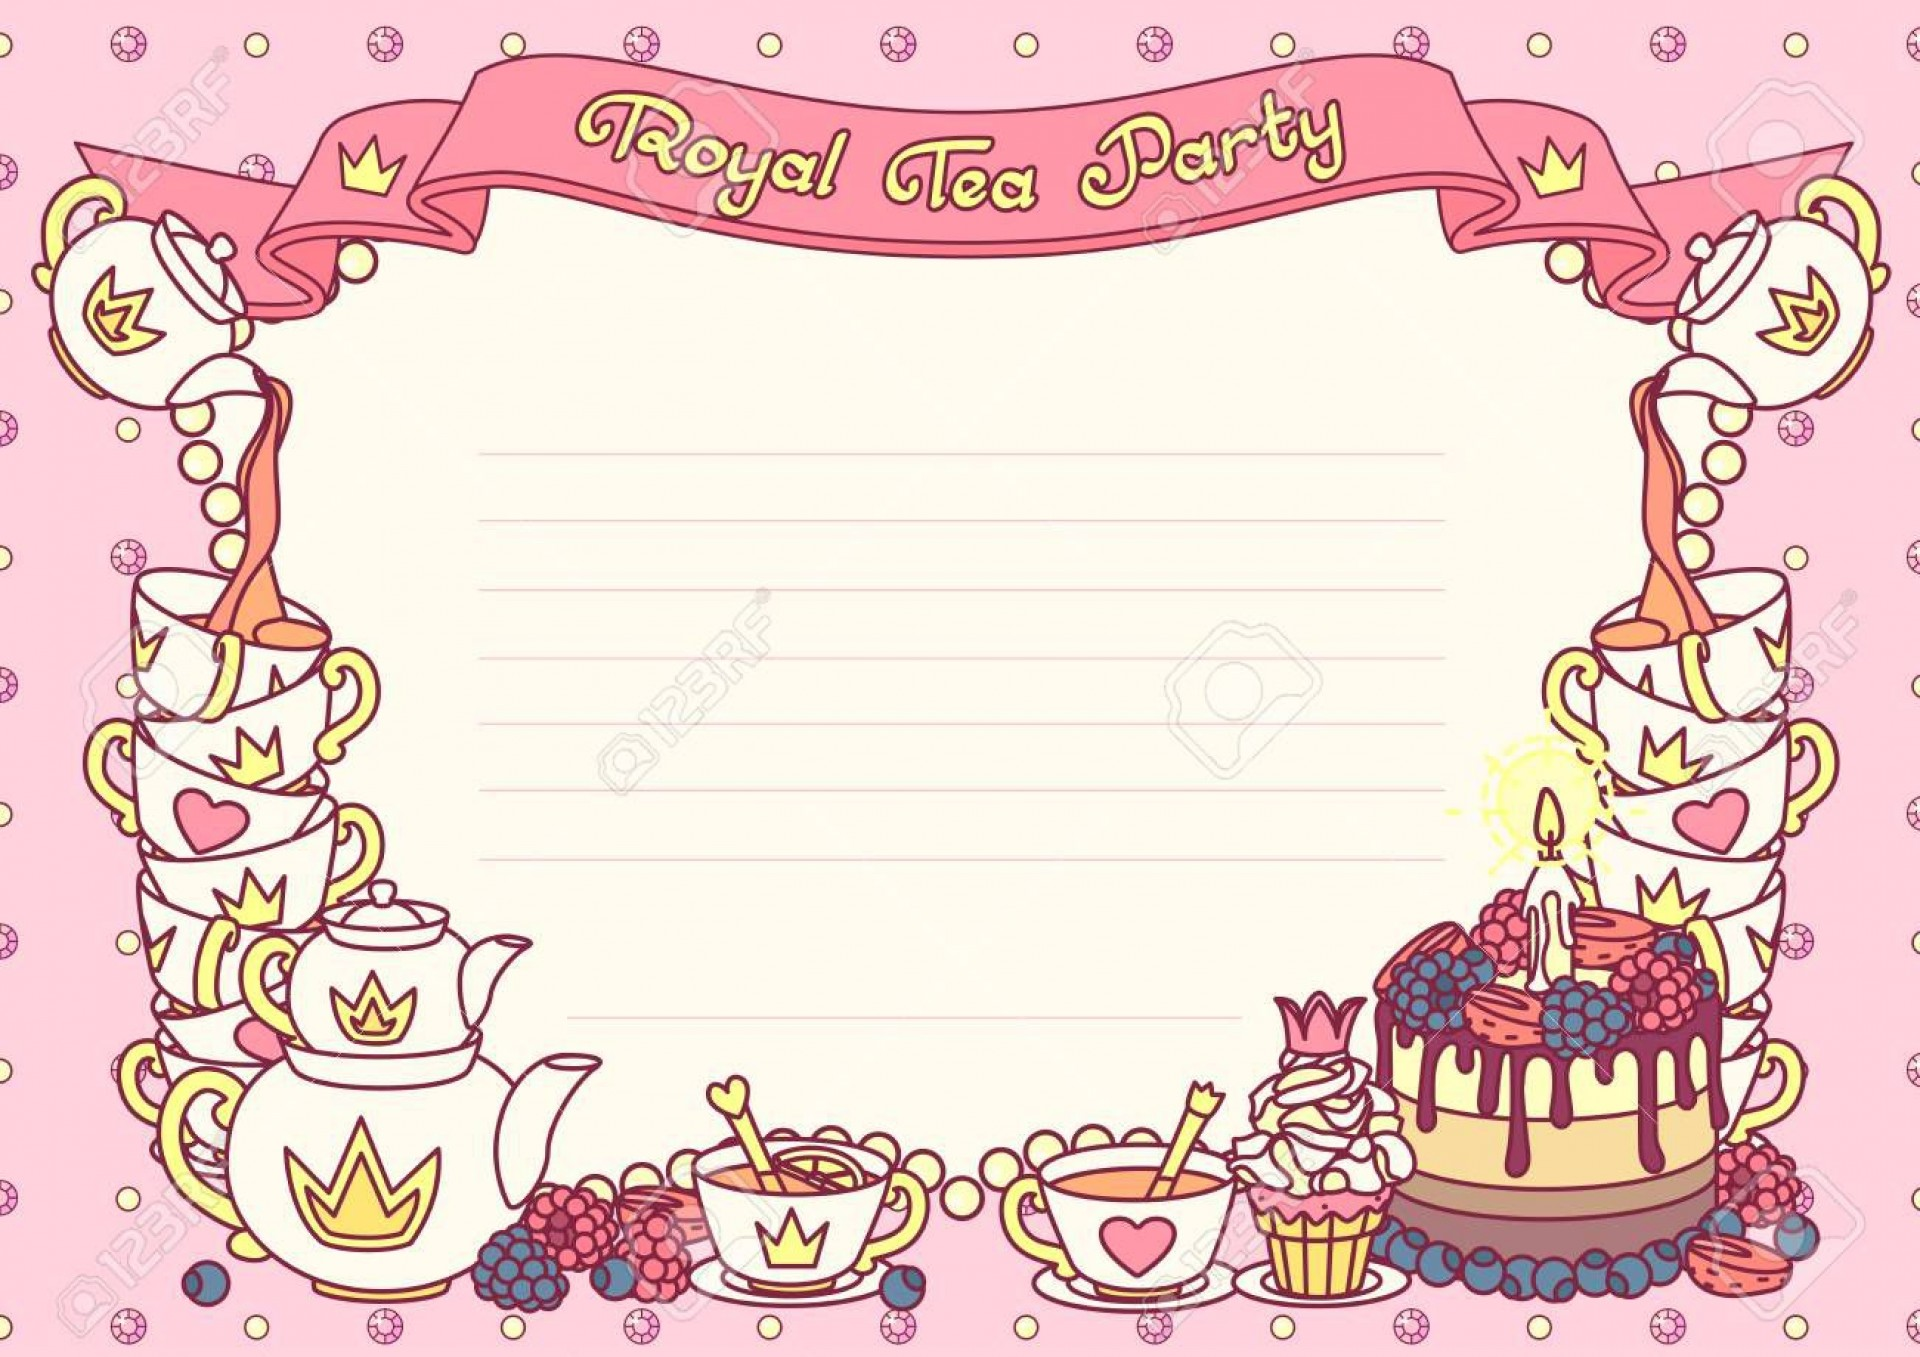 004 Marvelou Tea Party Invitation Template High Resolution  Templates Free Download Bridal Shower1920